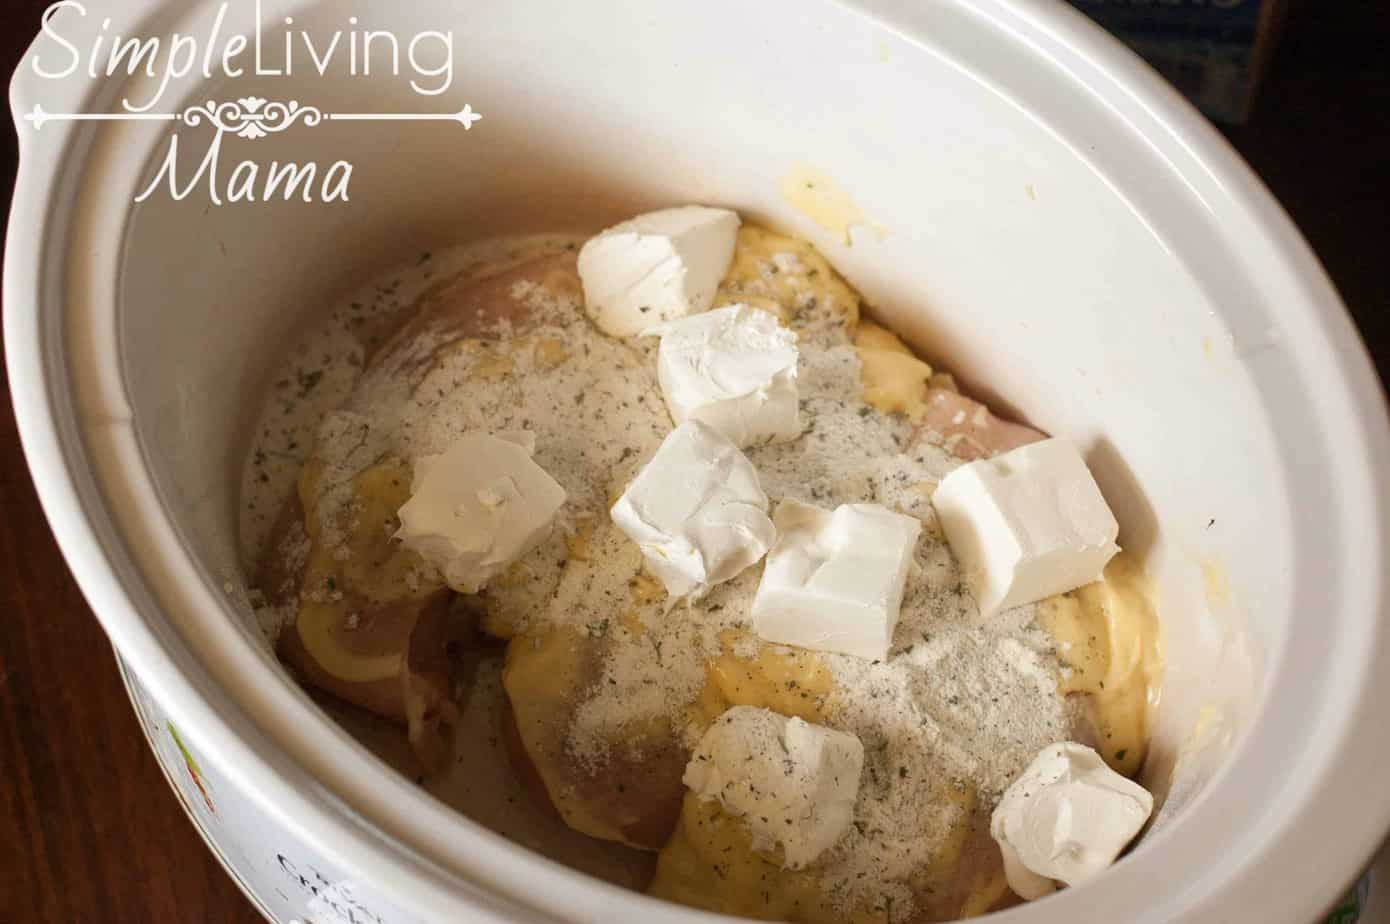 Adding cream cheese to the crock pot.